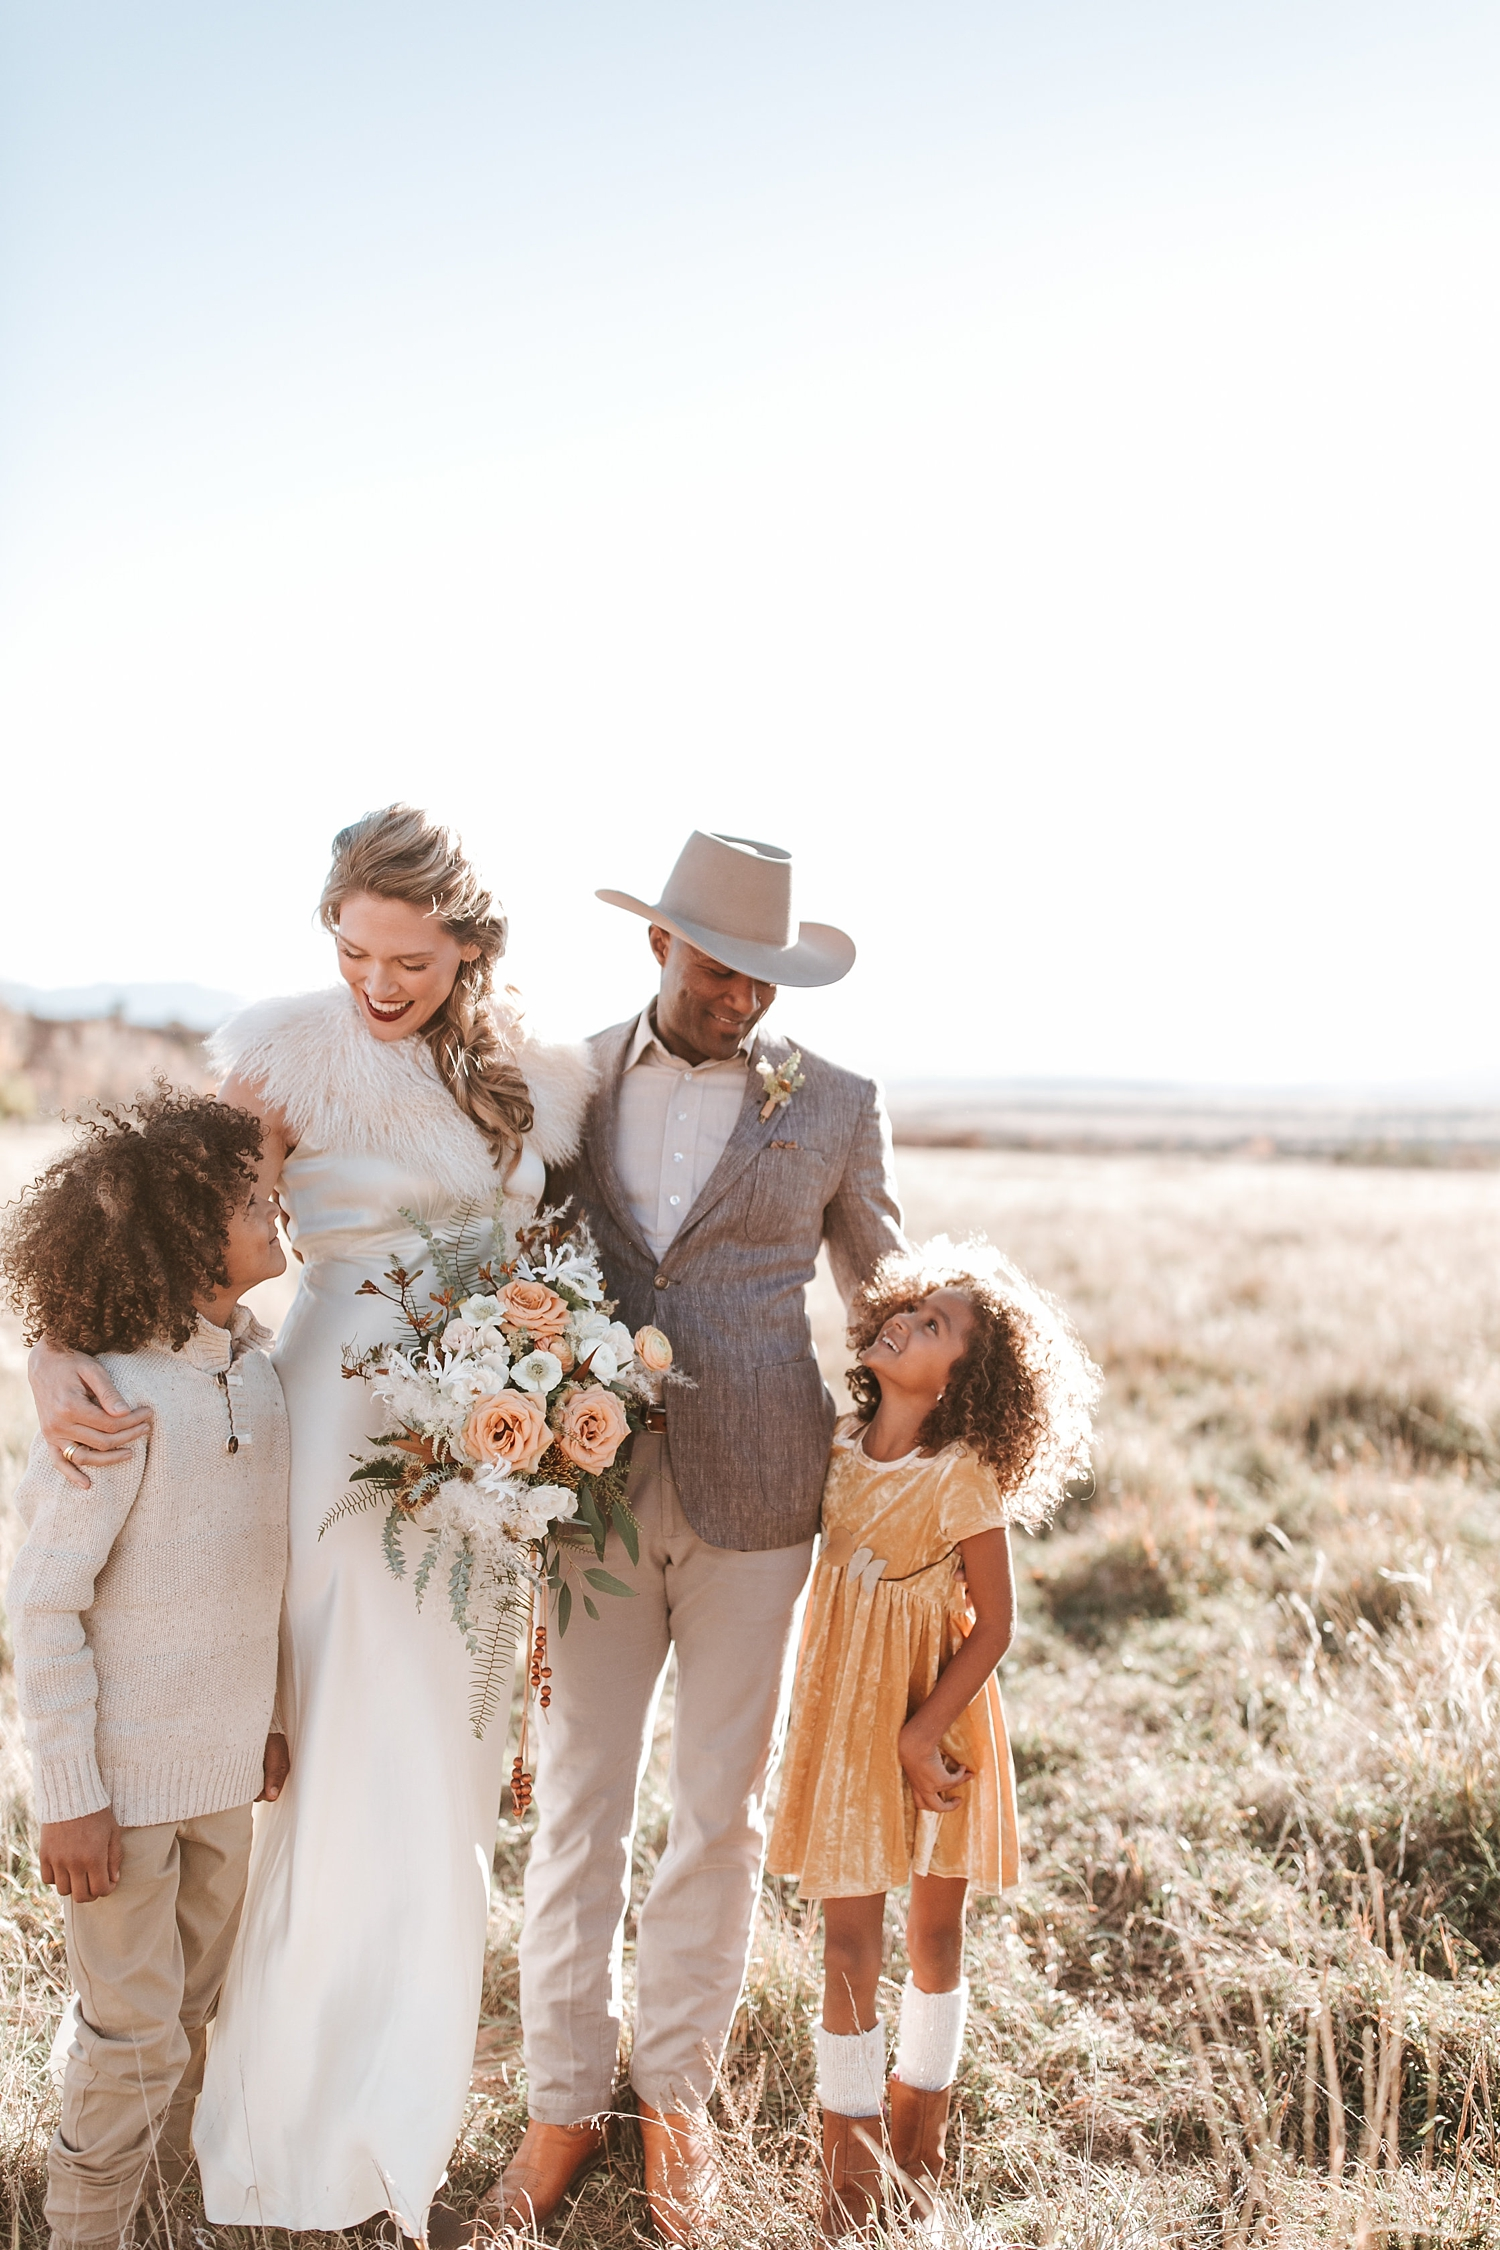 Alicia+lucia+photography+-+albuquerque+wedding+photographer+-+santa+fe+wedding+photography+-+new+mexico+wedding+photographer+-+new+mexico+ghost+ranch+wedding+-+styled+wedding+shoot_0025.jpg